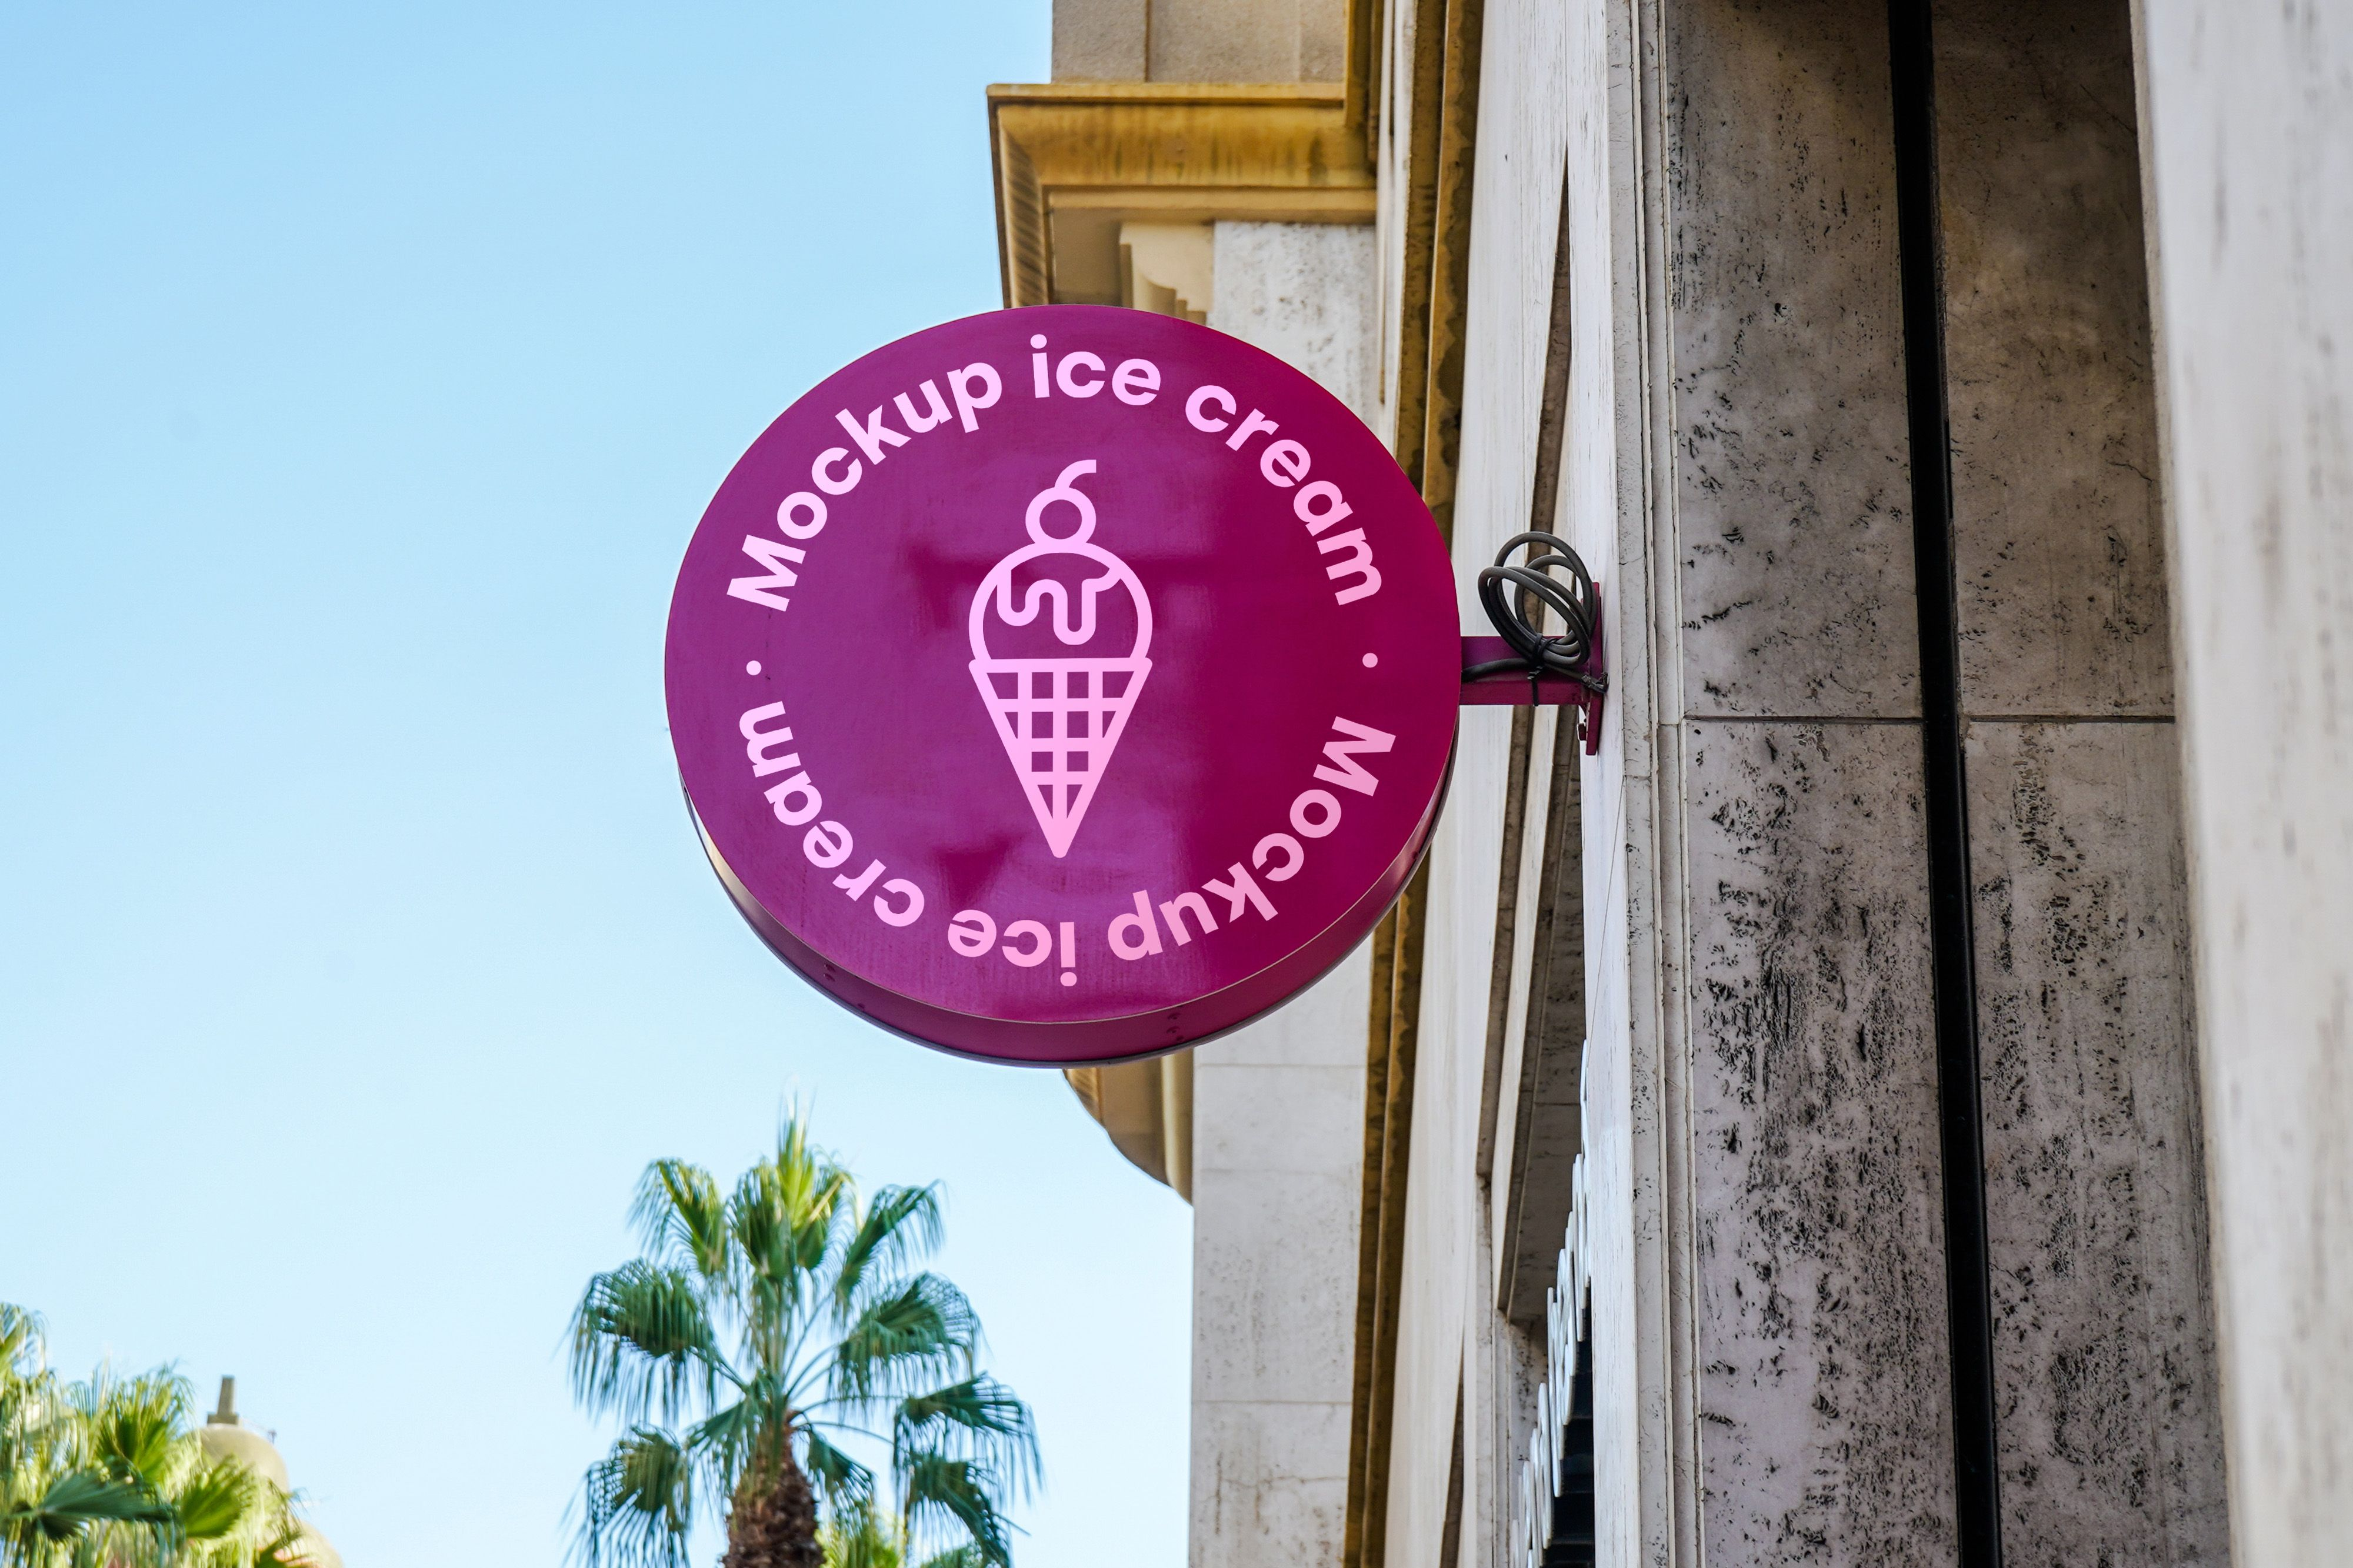 Download mockup sign ice cream city for free in 2020